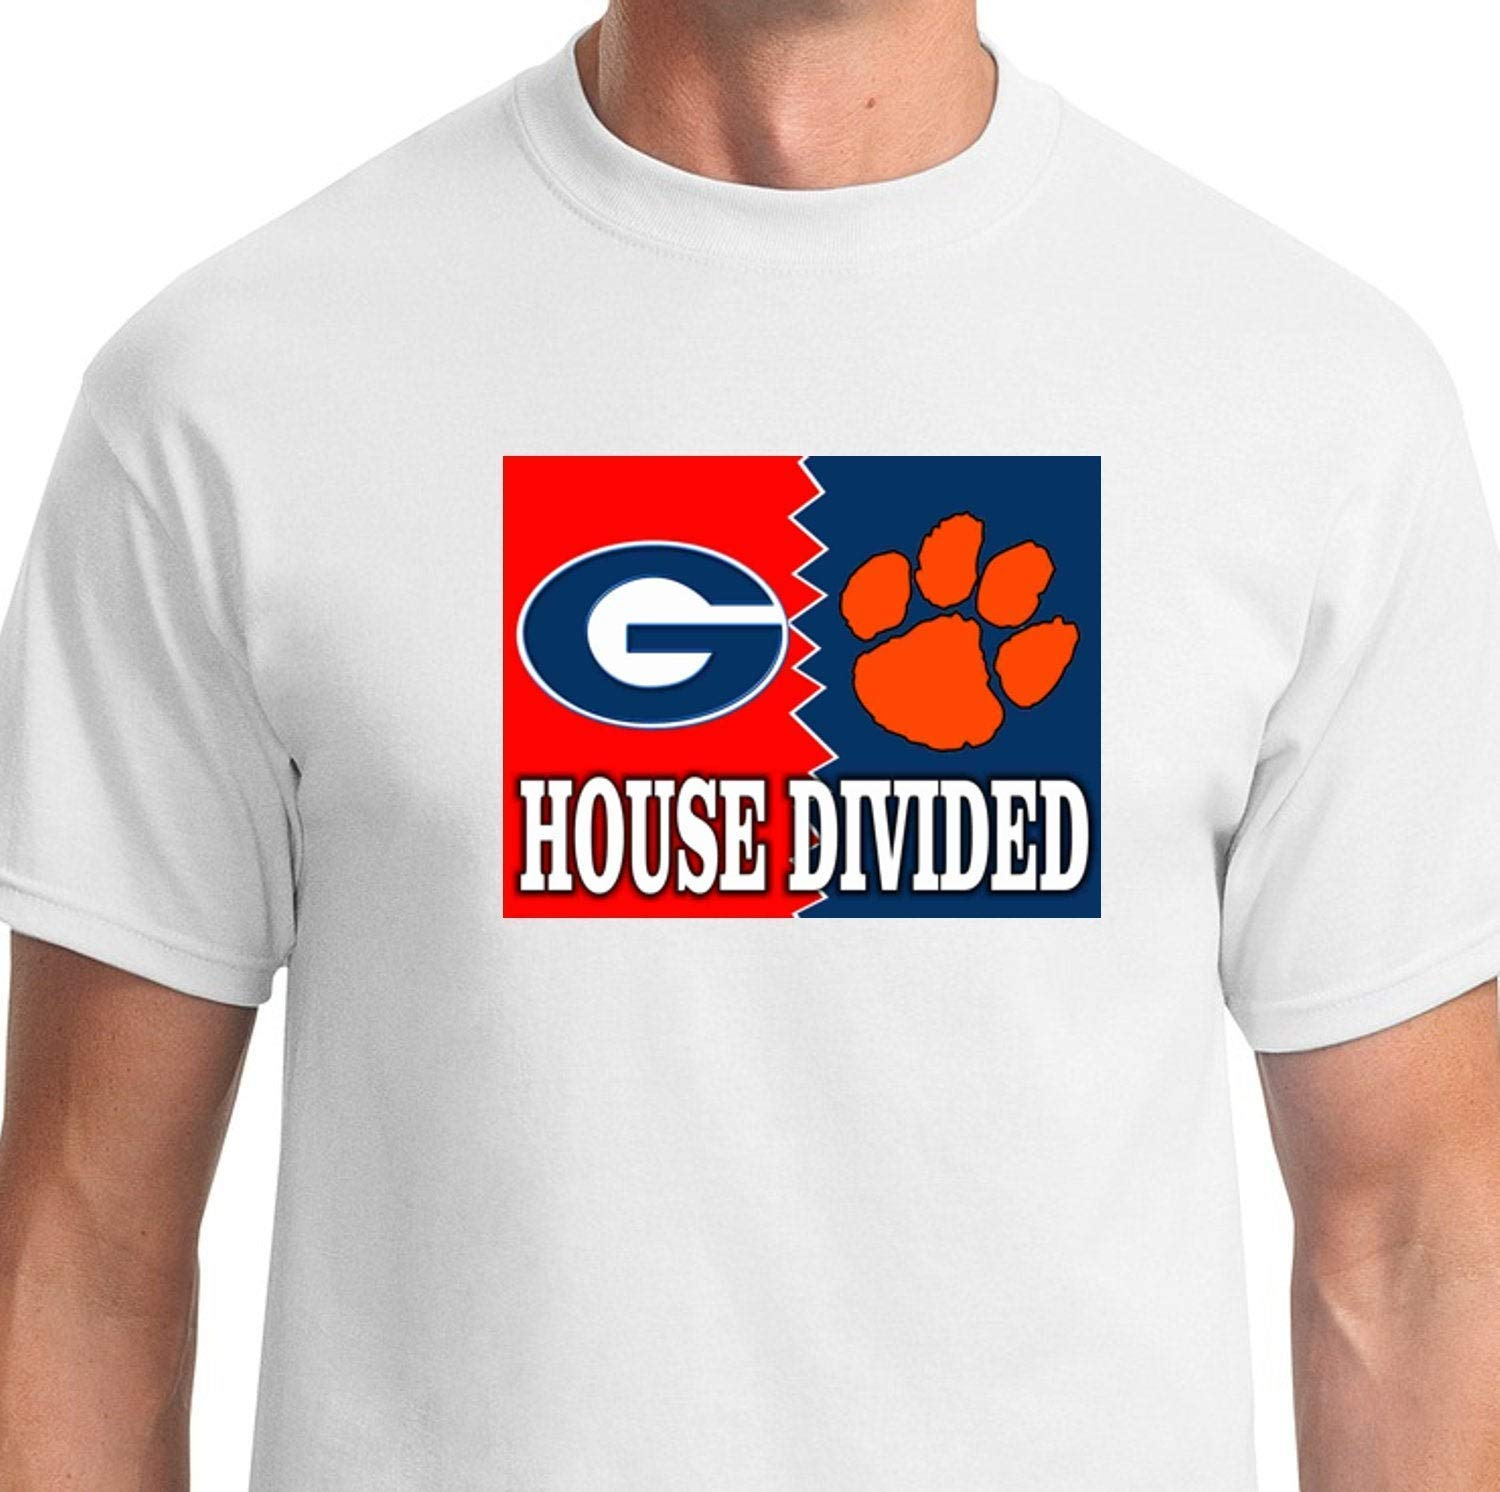 T-shirts For , Shirt Unisex Custom Made Any Sport Team Any College Any Military Branch